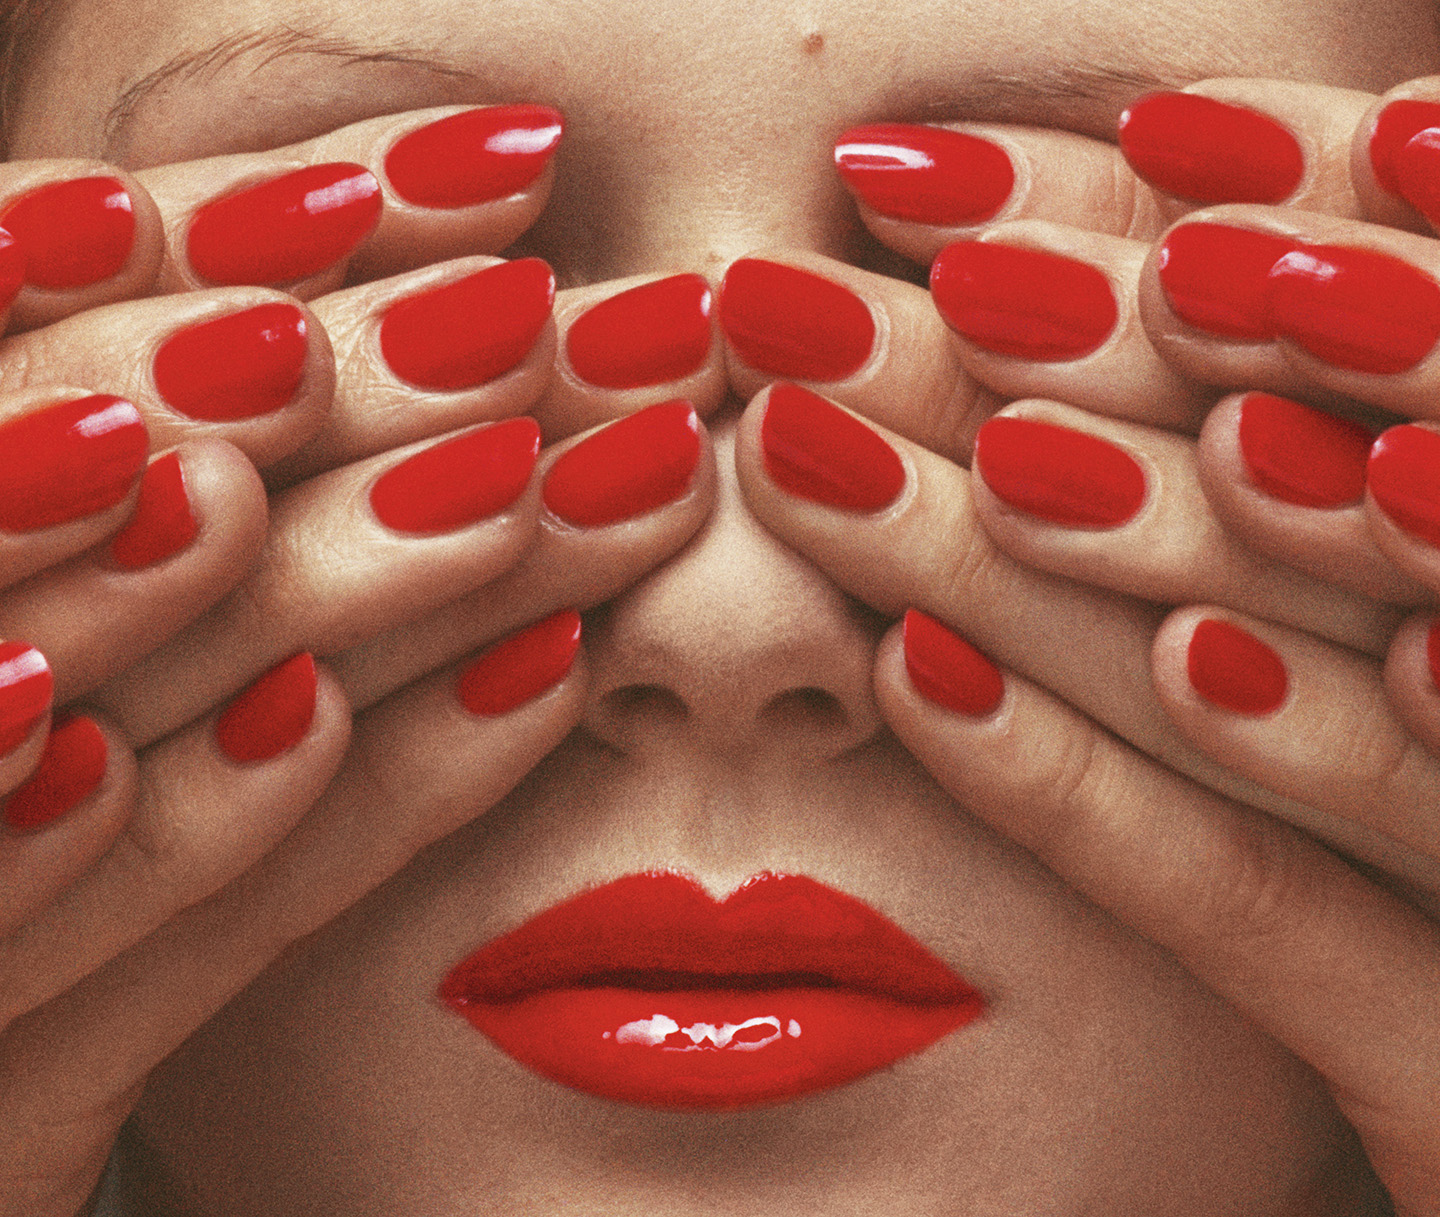 gb1_photo_by_guy_bourdin